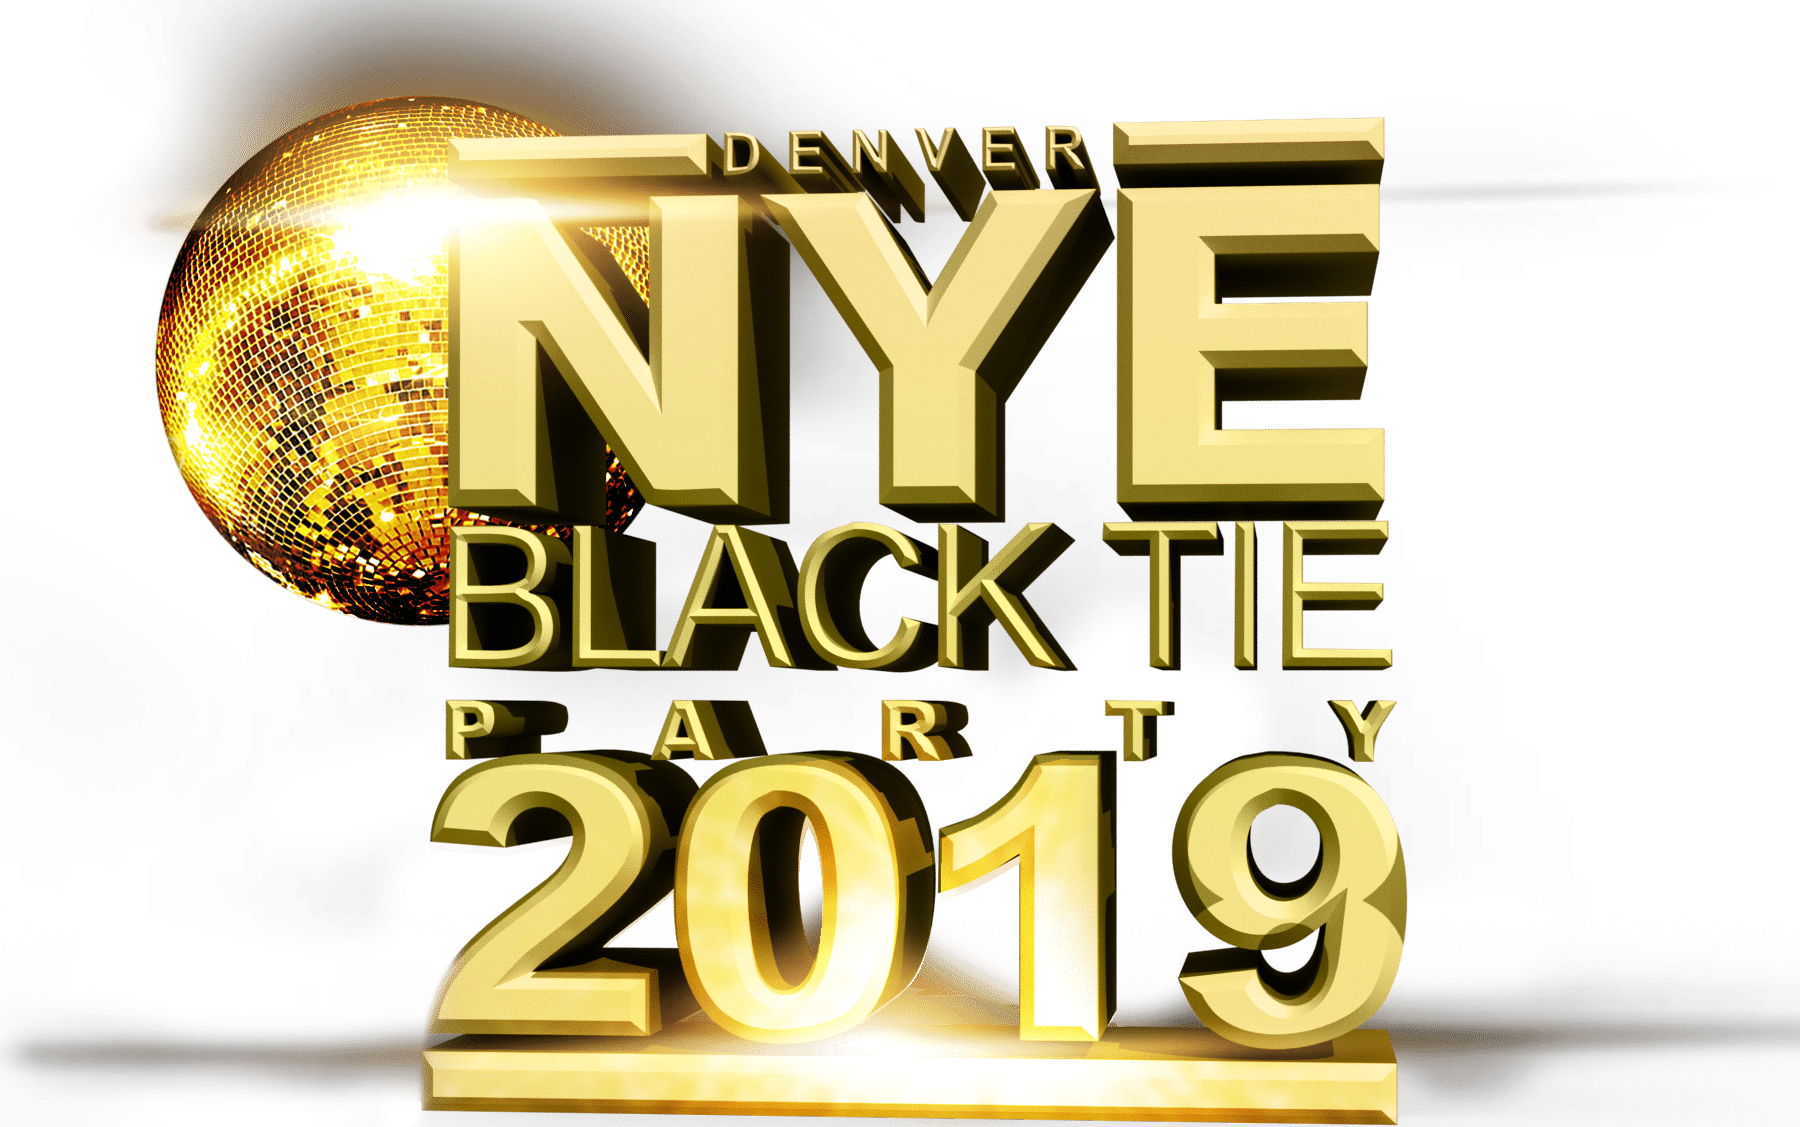 New Years Eve Denver | Denver New Years Eve Black Tie Party 2019 - 2020